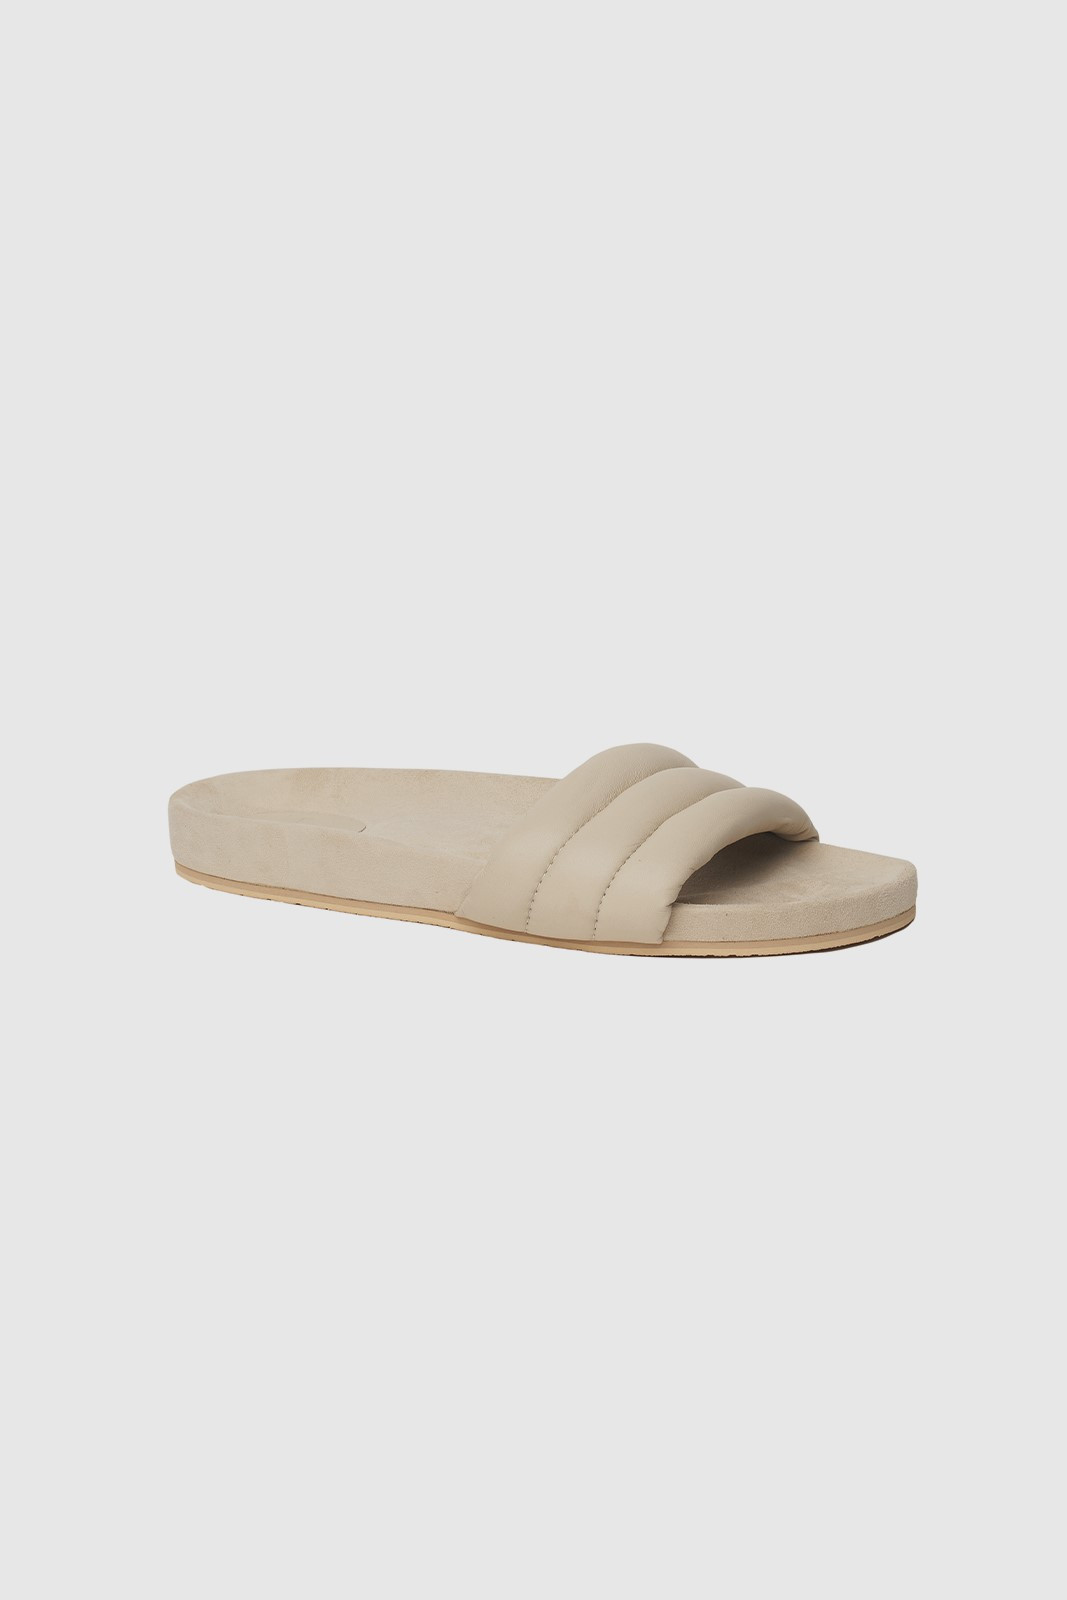 Elka Collective The Bowie Slide Neutrals  1